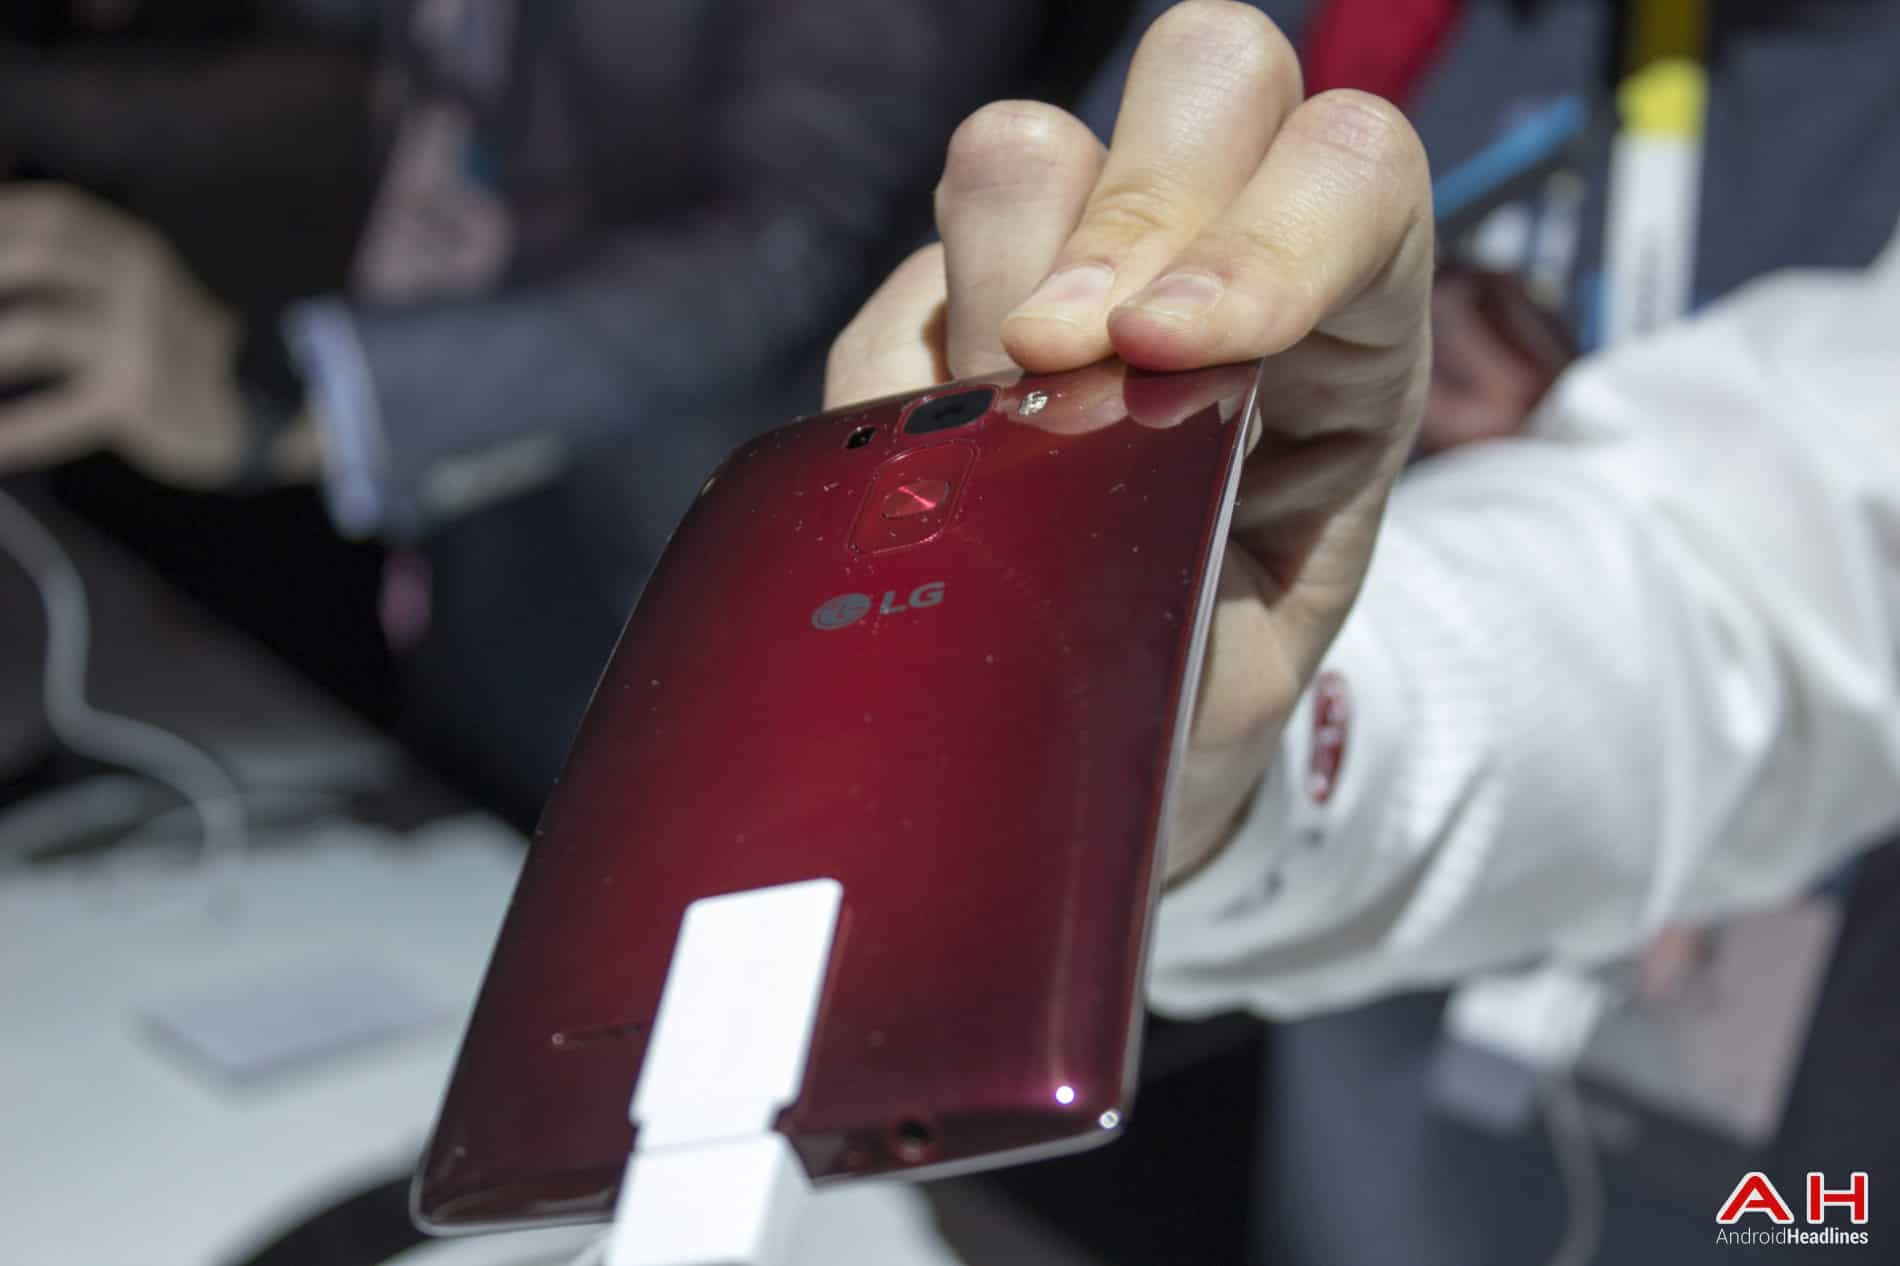 LG G Flex 2 Hands On AH 4